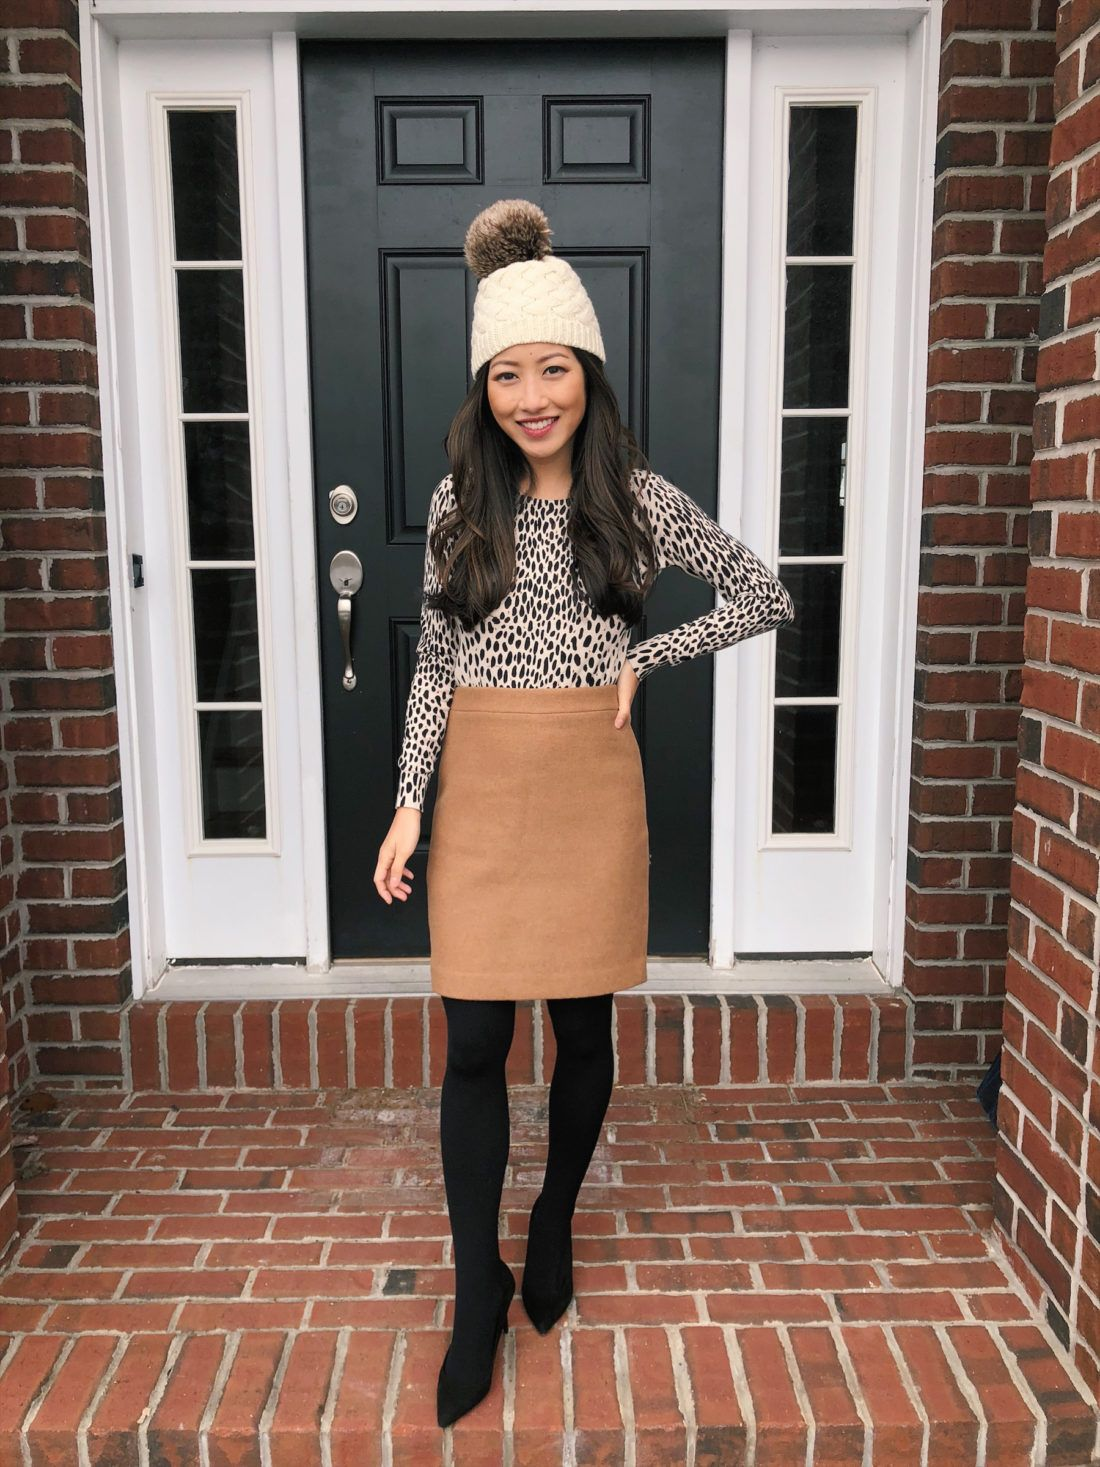 Winter Must Have Fleece lined tights | Pencil skirt